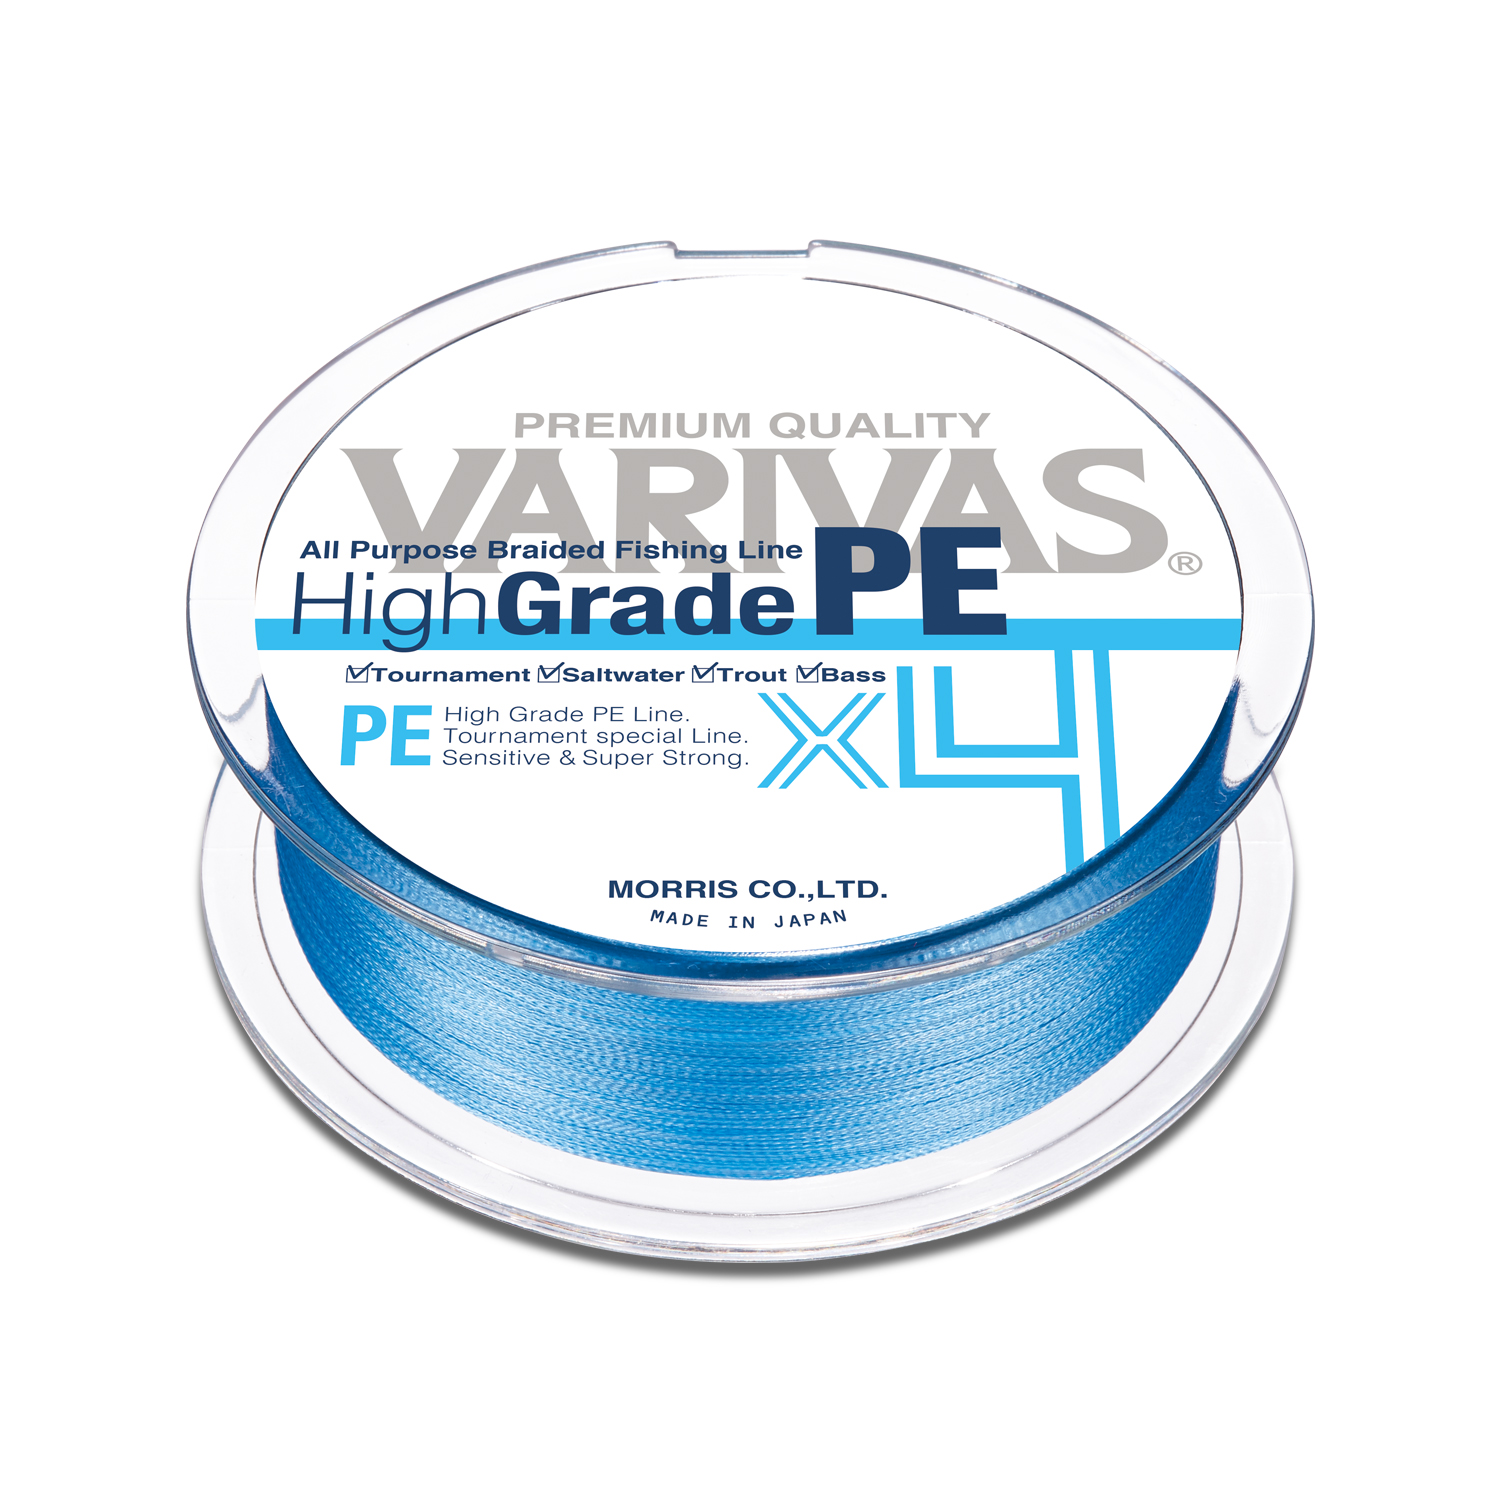 High Grade PEX4 [Water Blue]